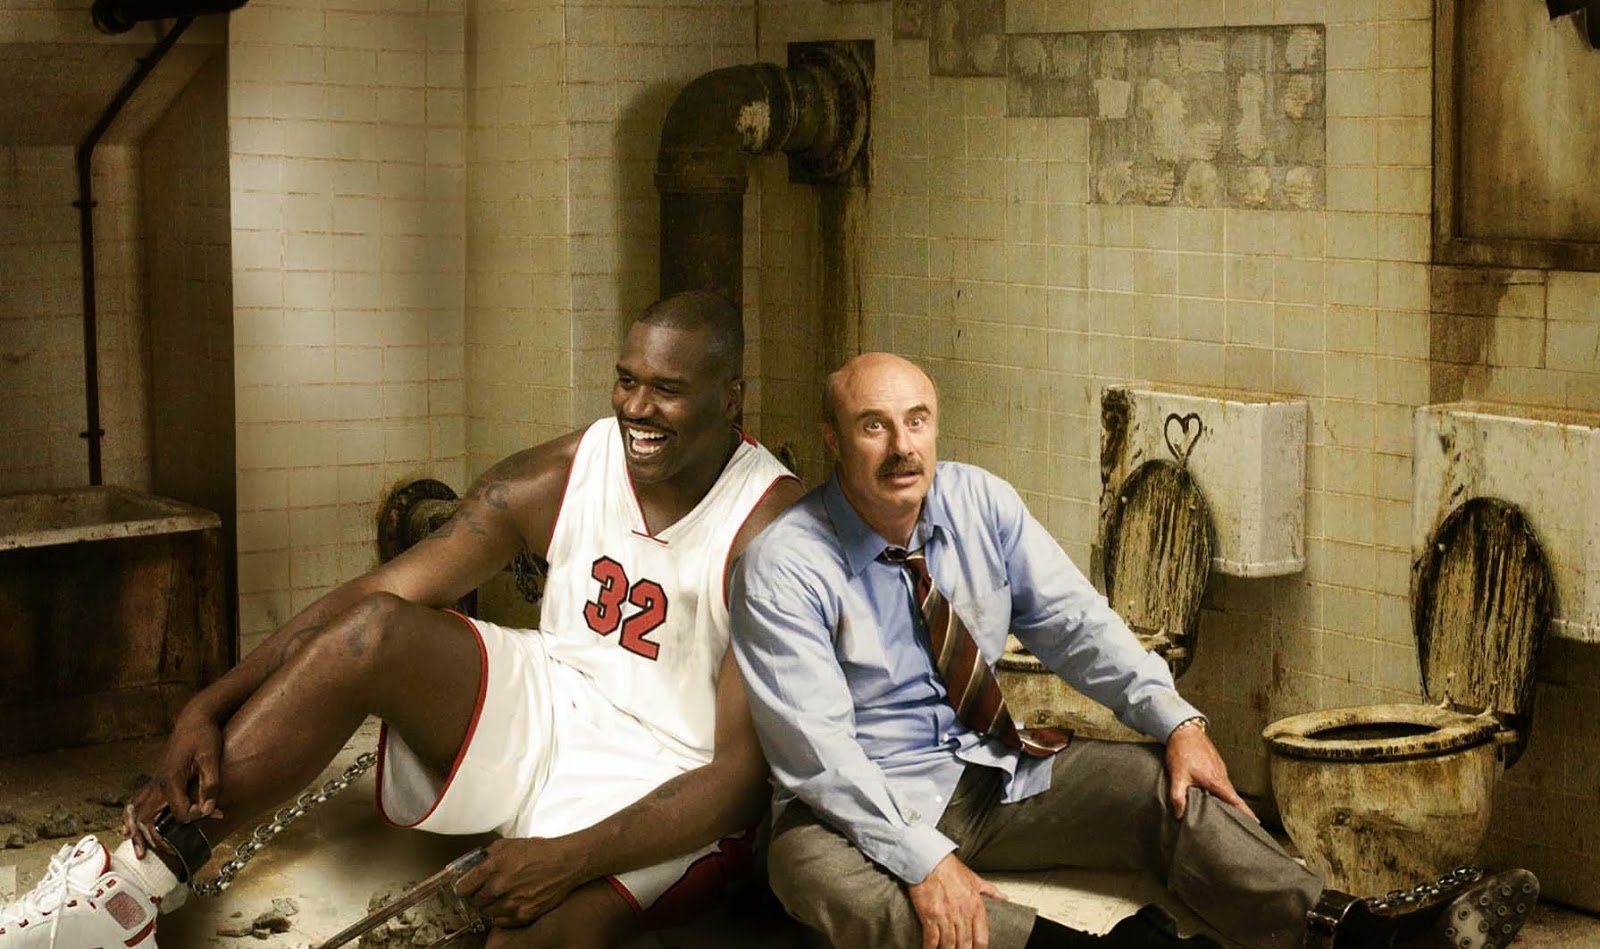 ( to r) Shaquille O'Neal and Dr Phil are locked up in the Saw basement in Scary Movie 4 (2006)